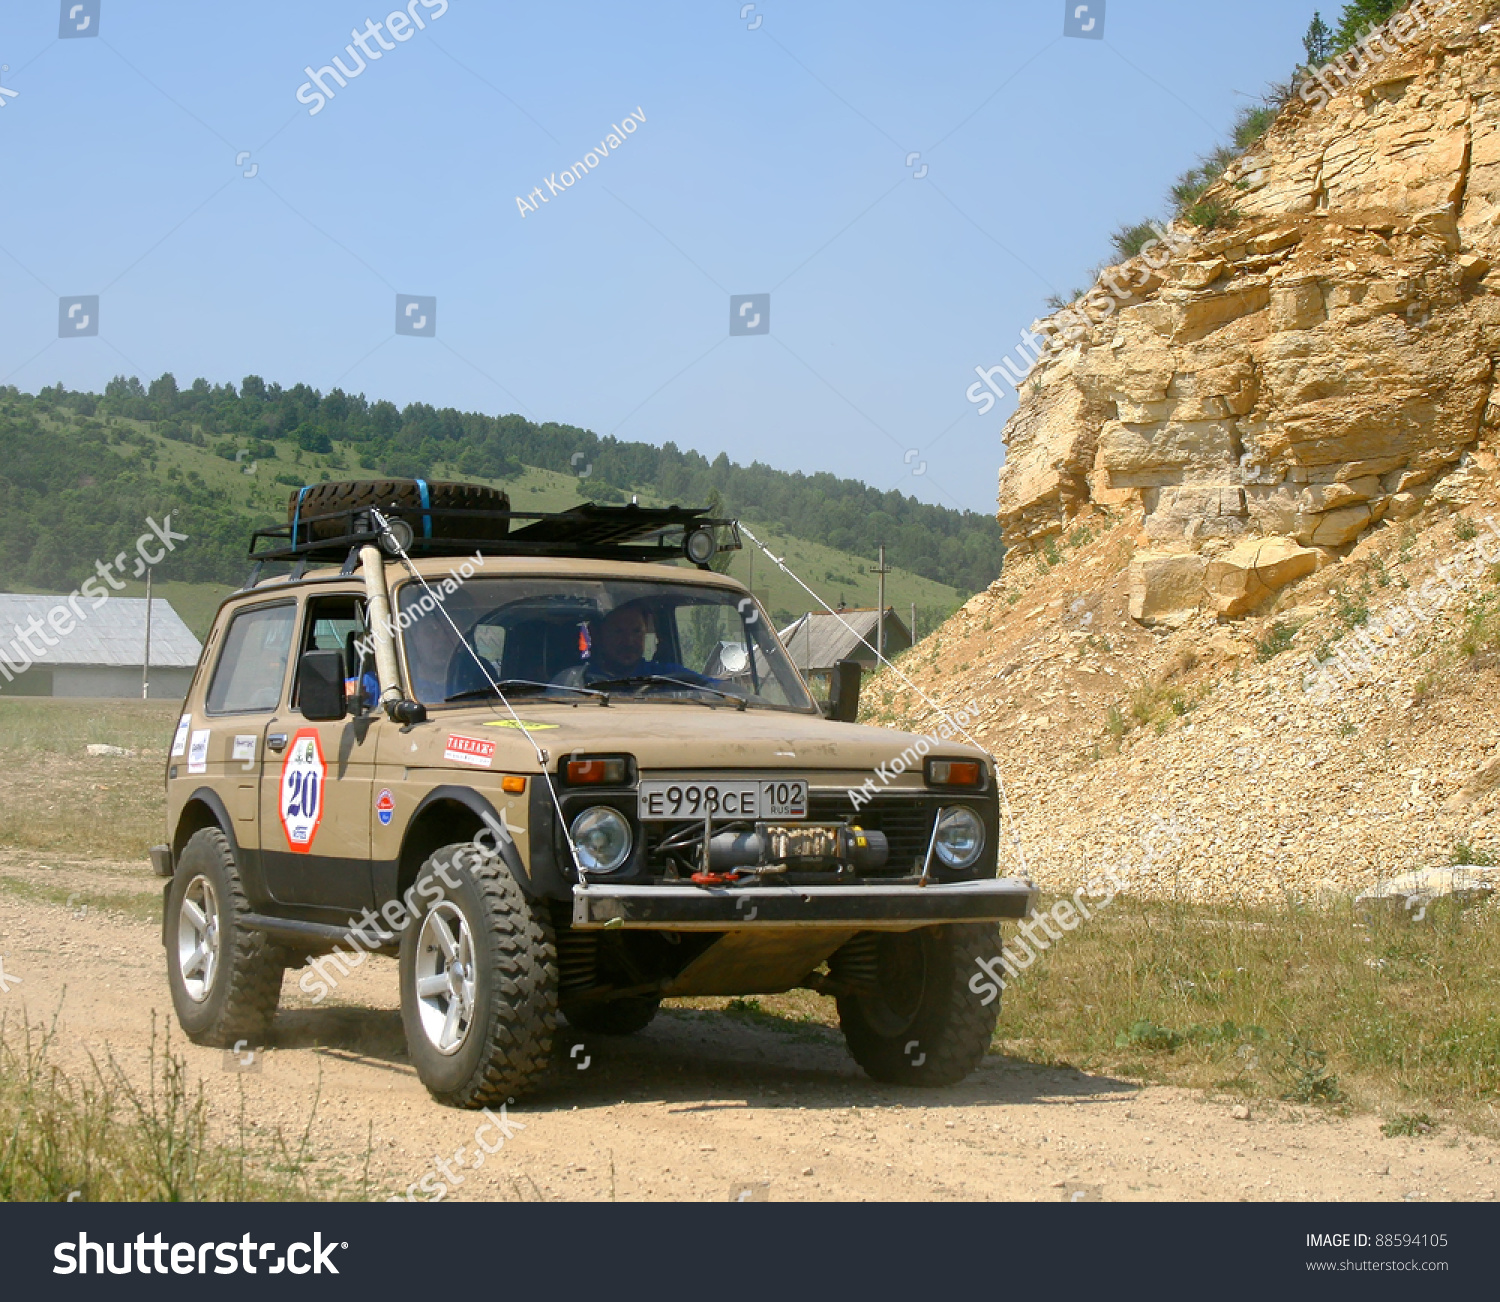 pavlovka russia june 26 offroad vehicle stock photo. Black Bedroom Furniture Sets. Home Design Ideas